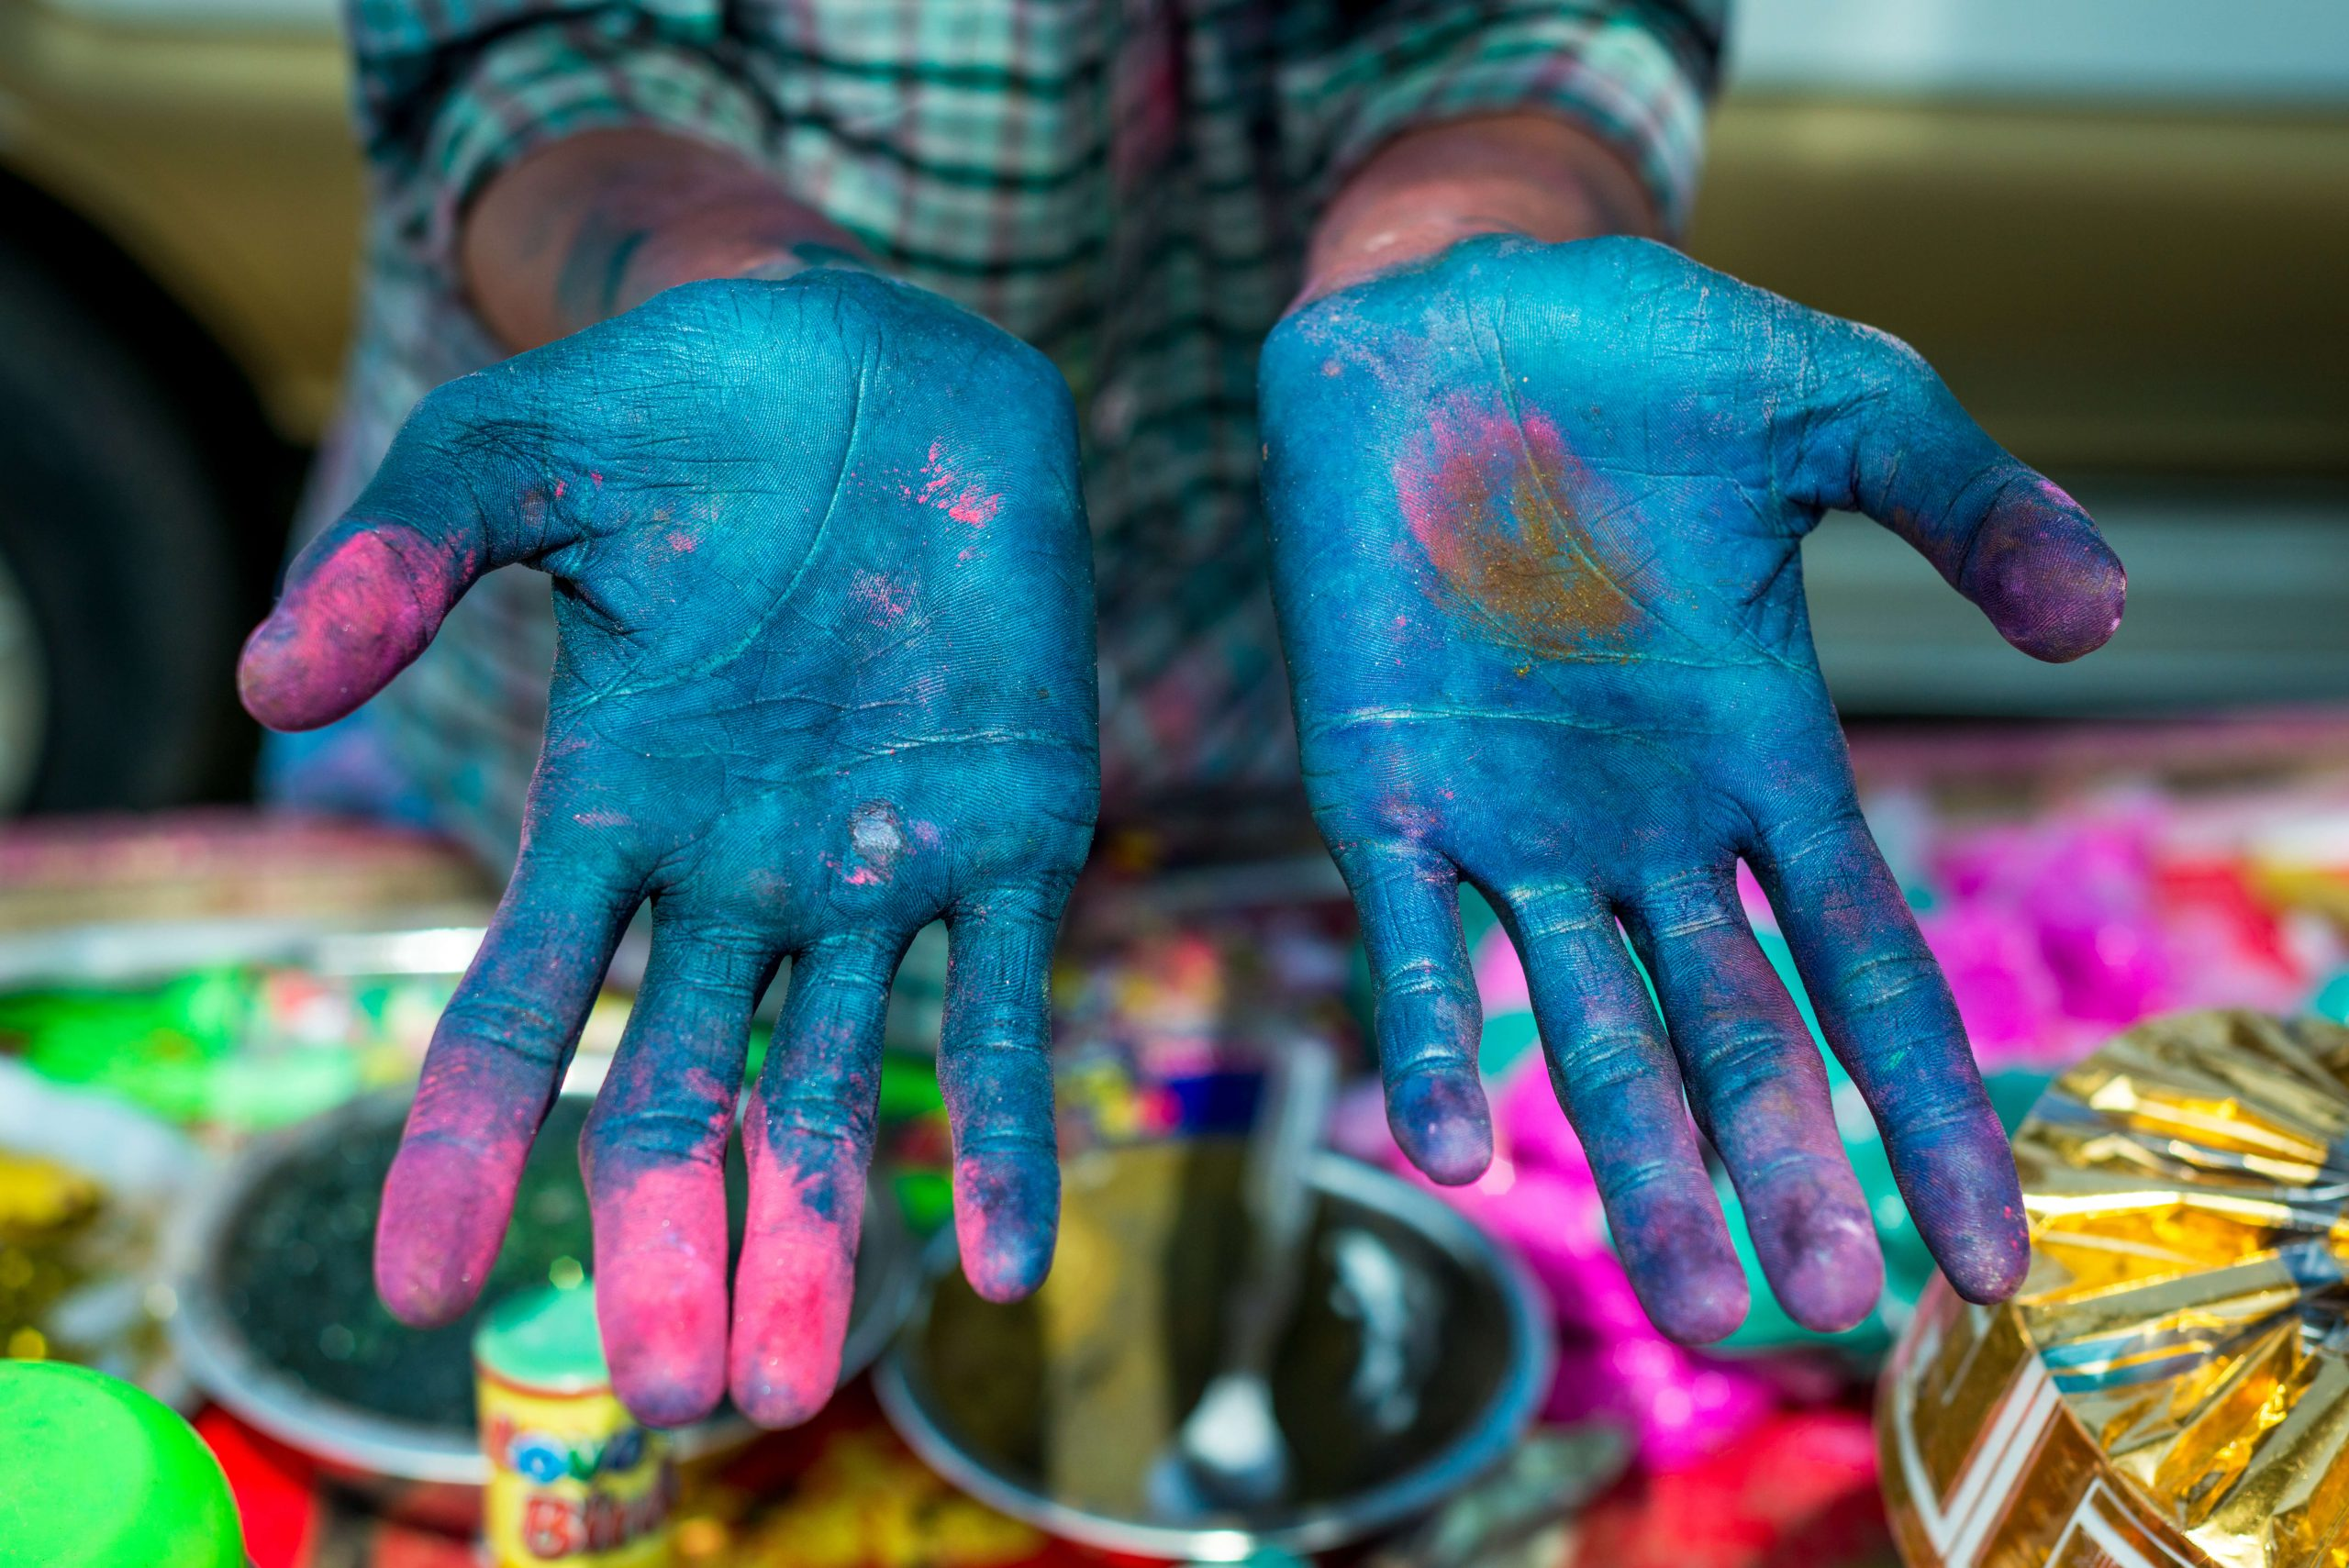 Colourful hands during Holi festival in Rajasthan, India